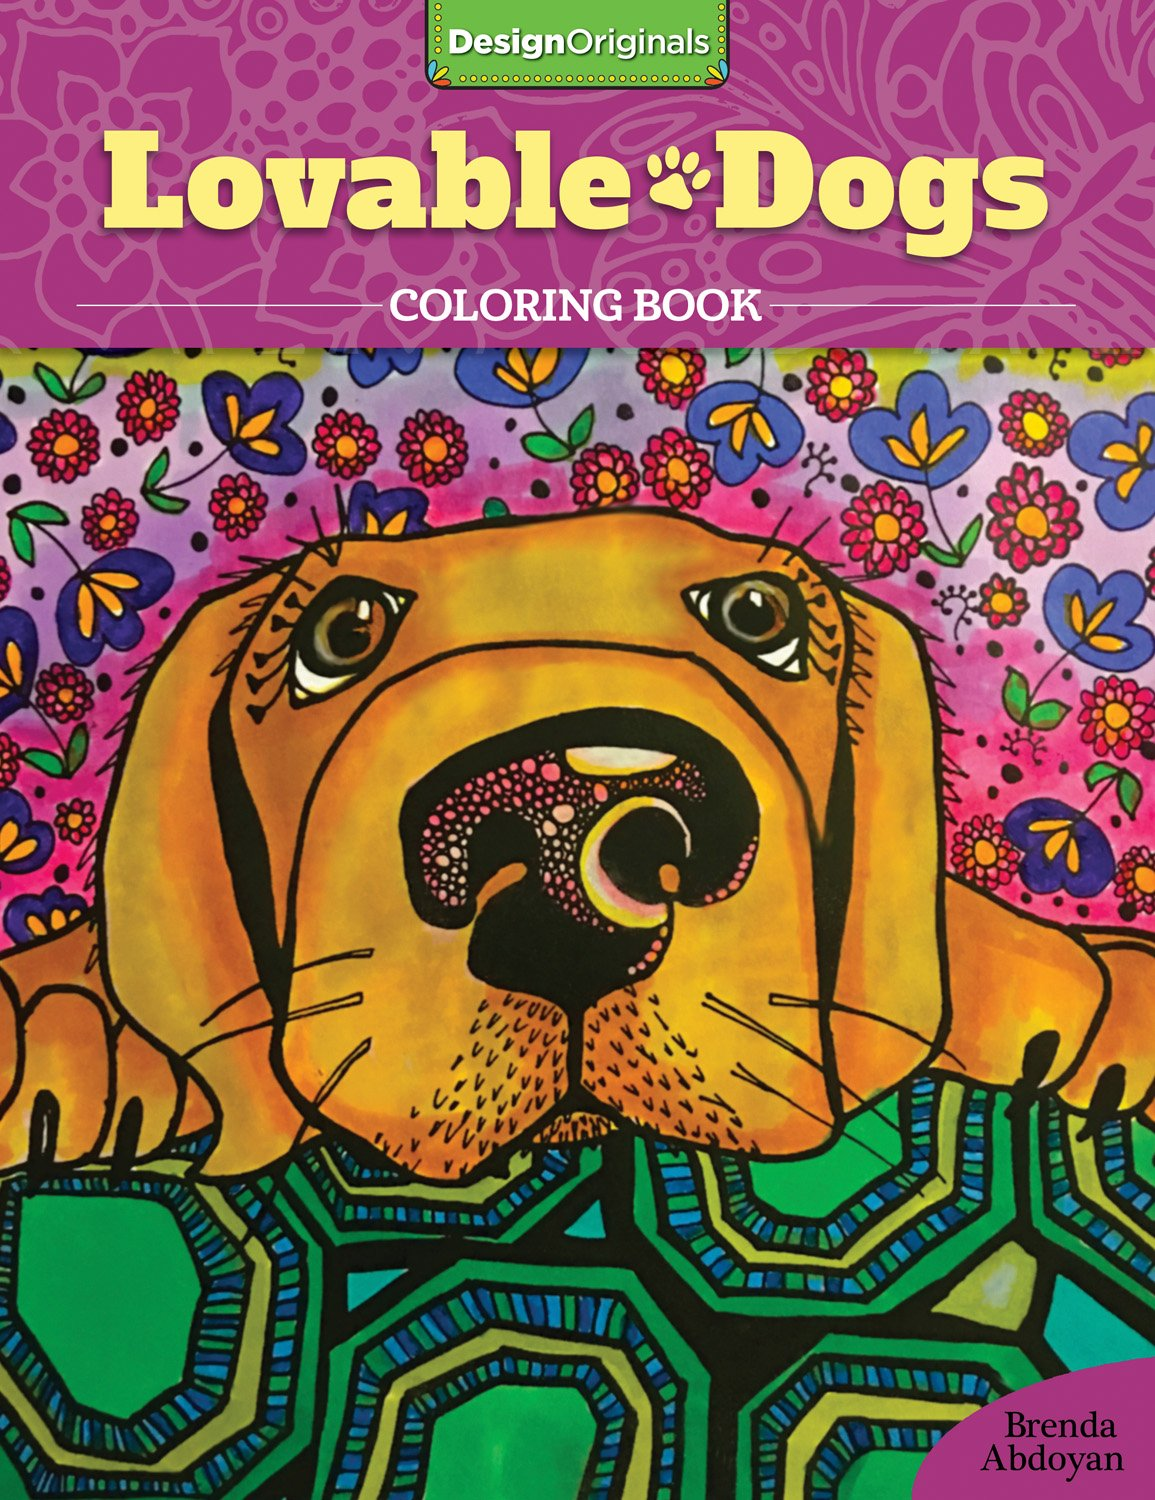 Lovable Dogs Coloring Brenda Abdoyan product image